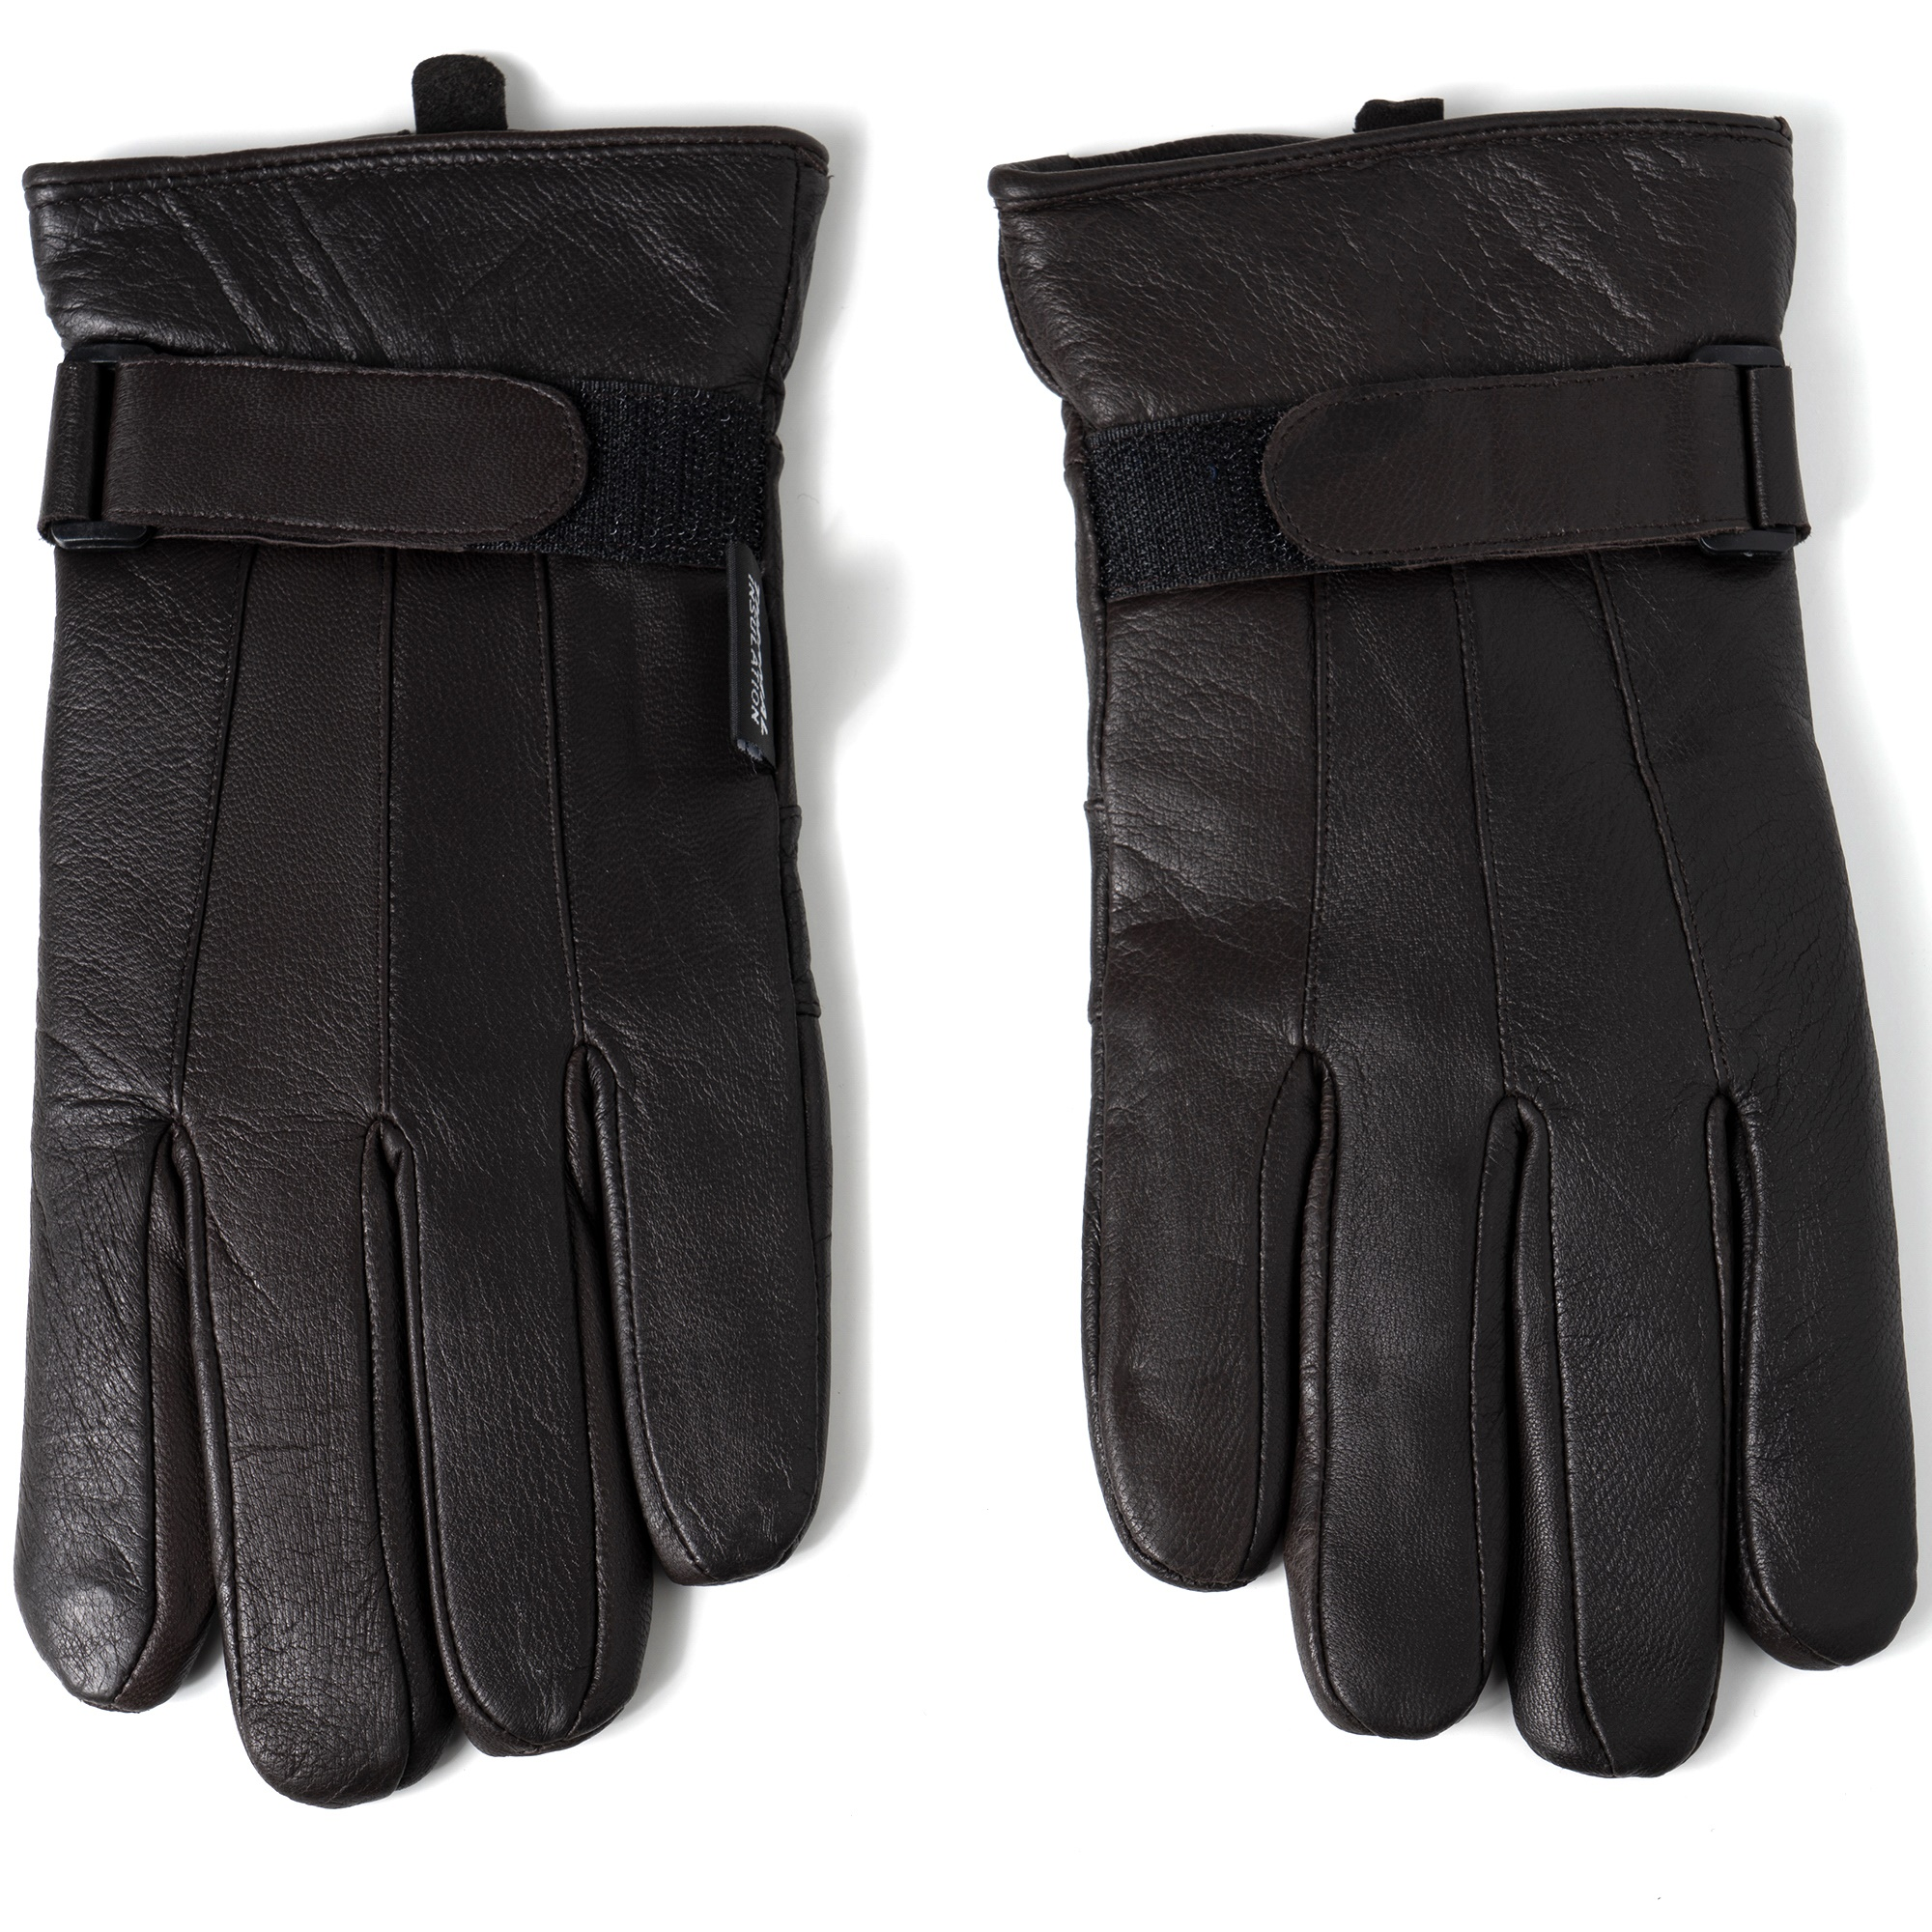 Alpine-Swiss-Mens-Gloves-Dressy-Genuine-Leather-Warm-Thermal-Lined-Wrist-Strap thumbnail 24